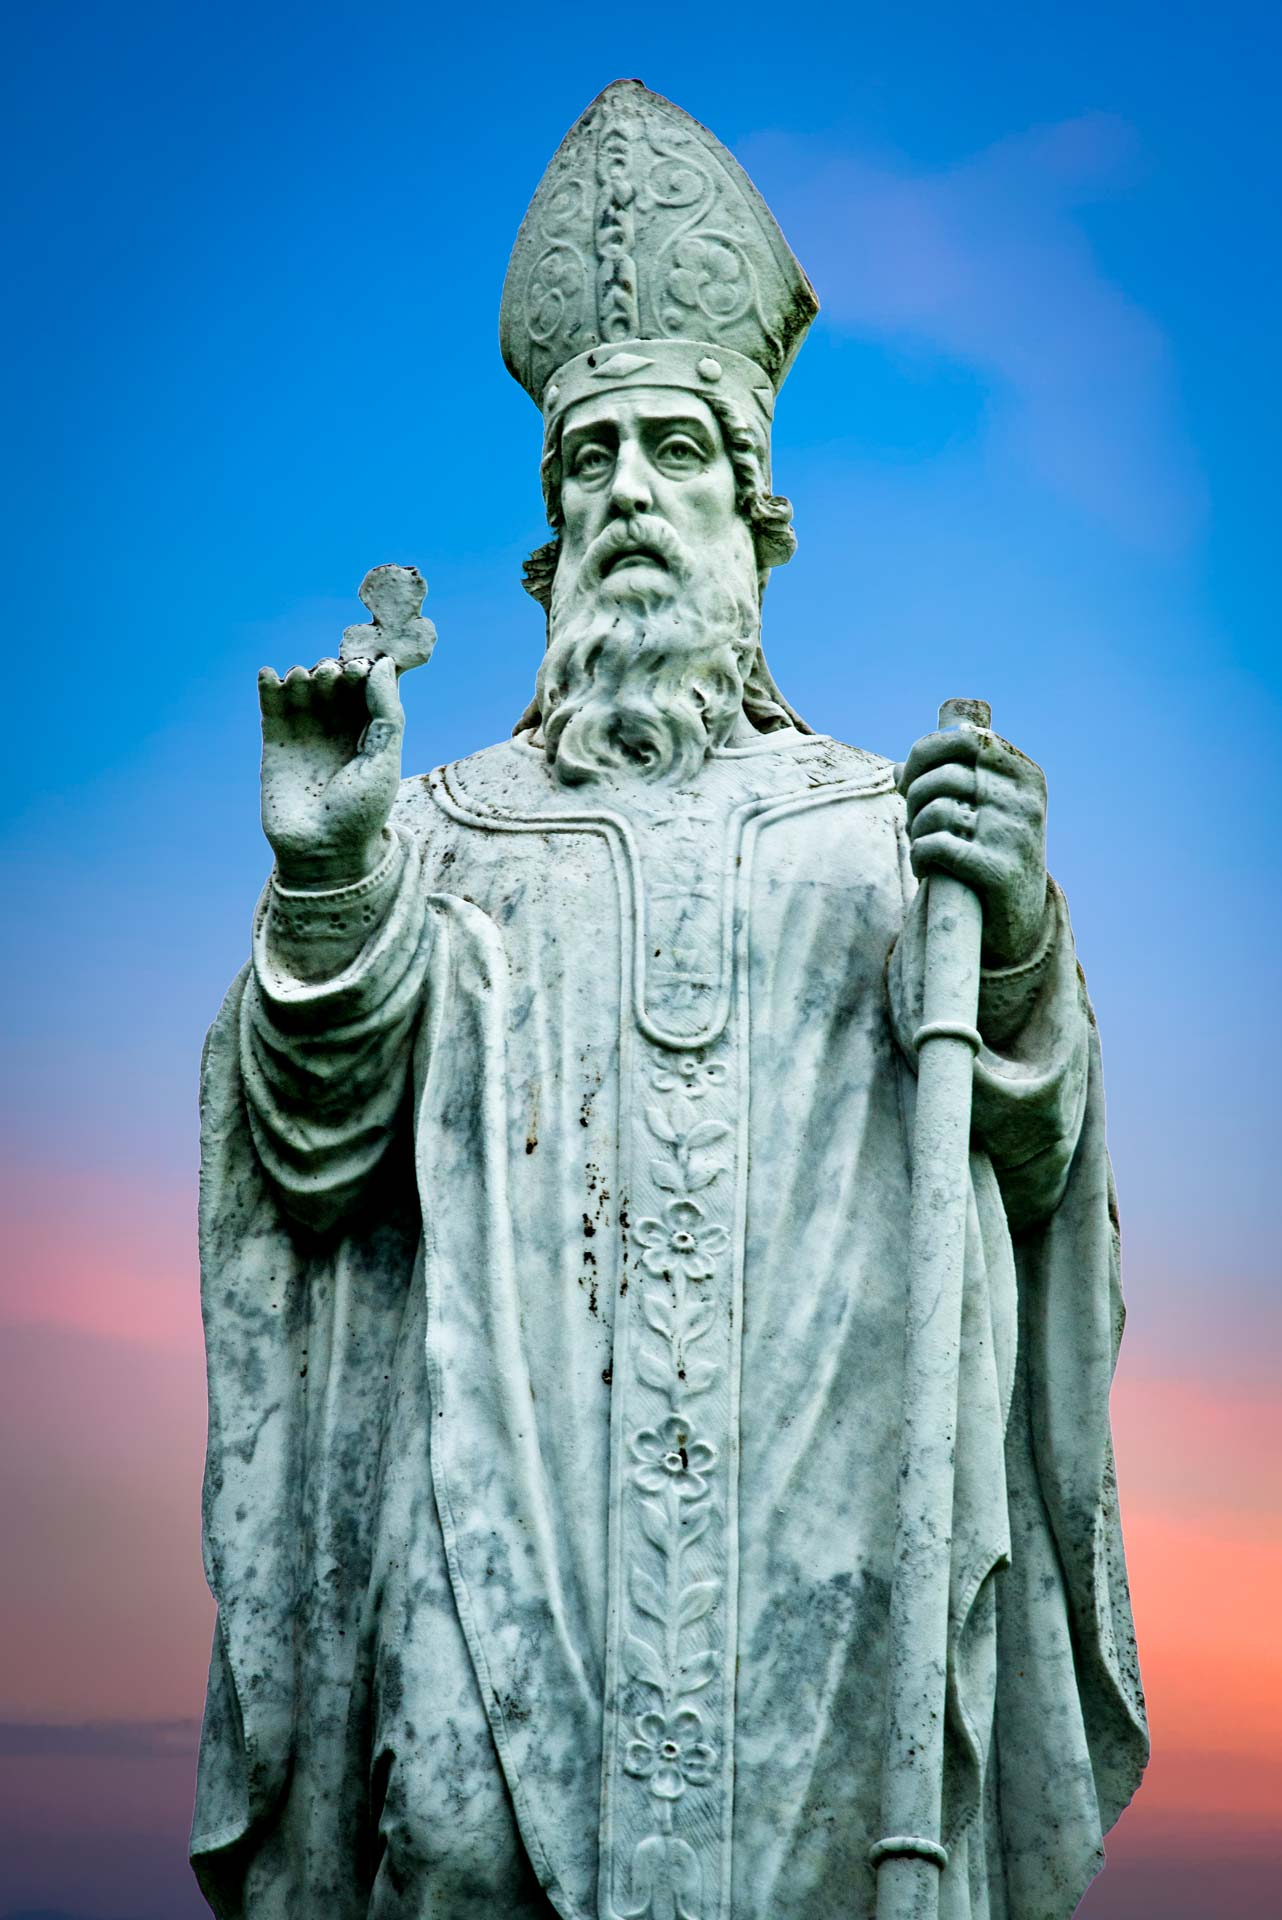 Statue of St Patrick, photographed at Hill of Tara, County Meath.